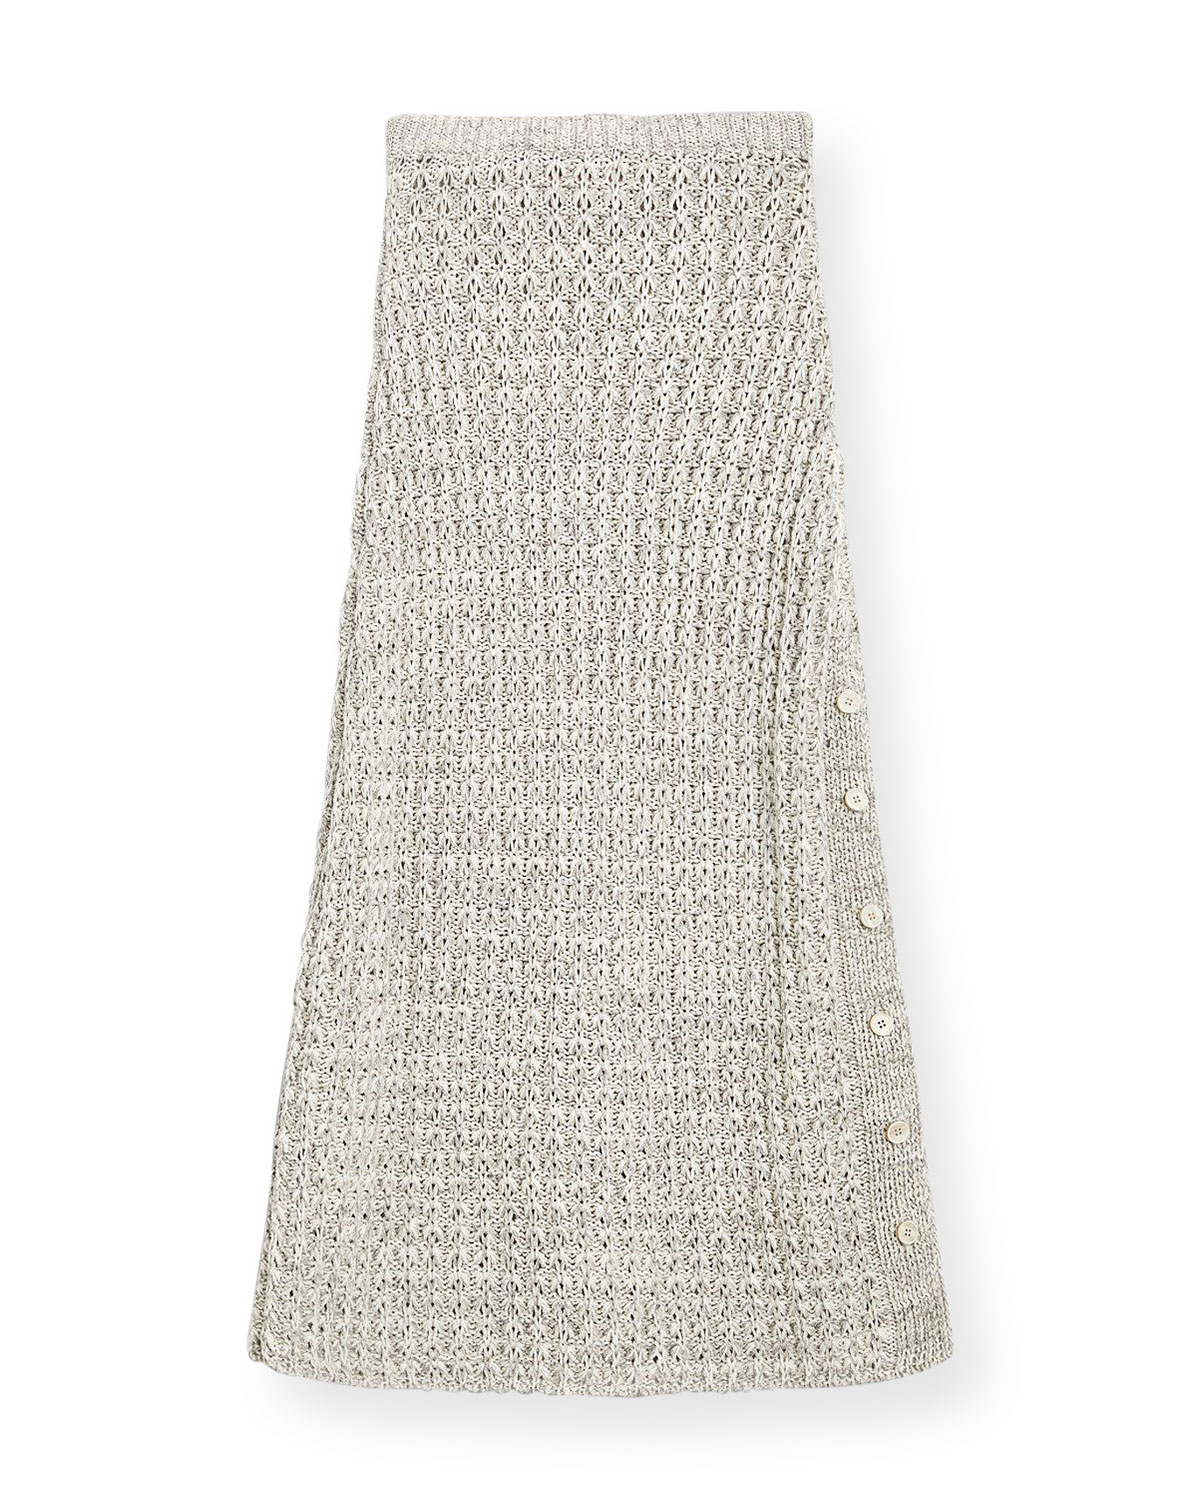 Brock Collection SIDE BUTTON COTTON-BLEND KNIT MIDI SKIRT